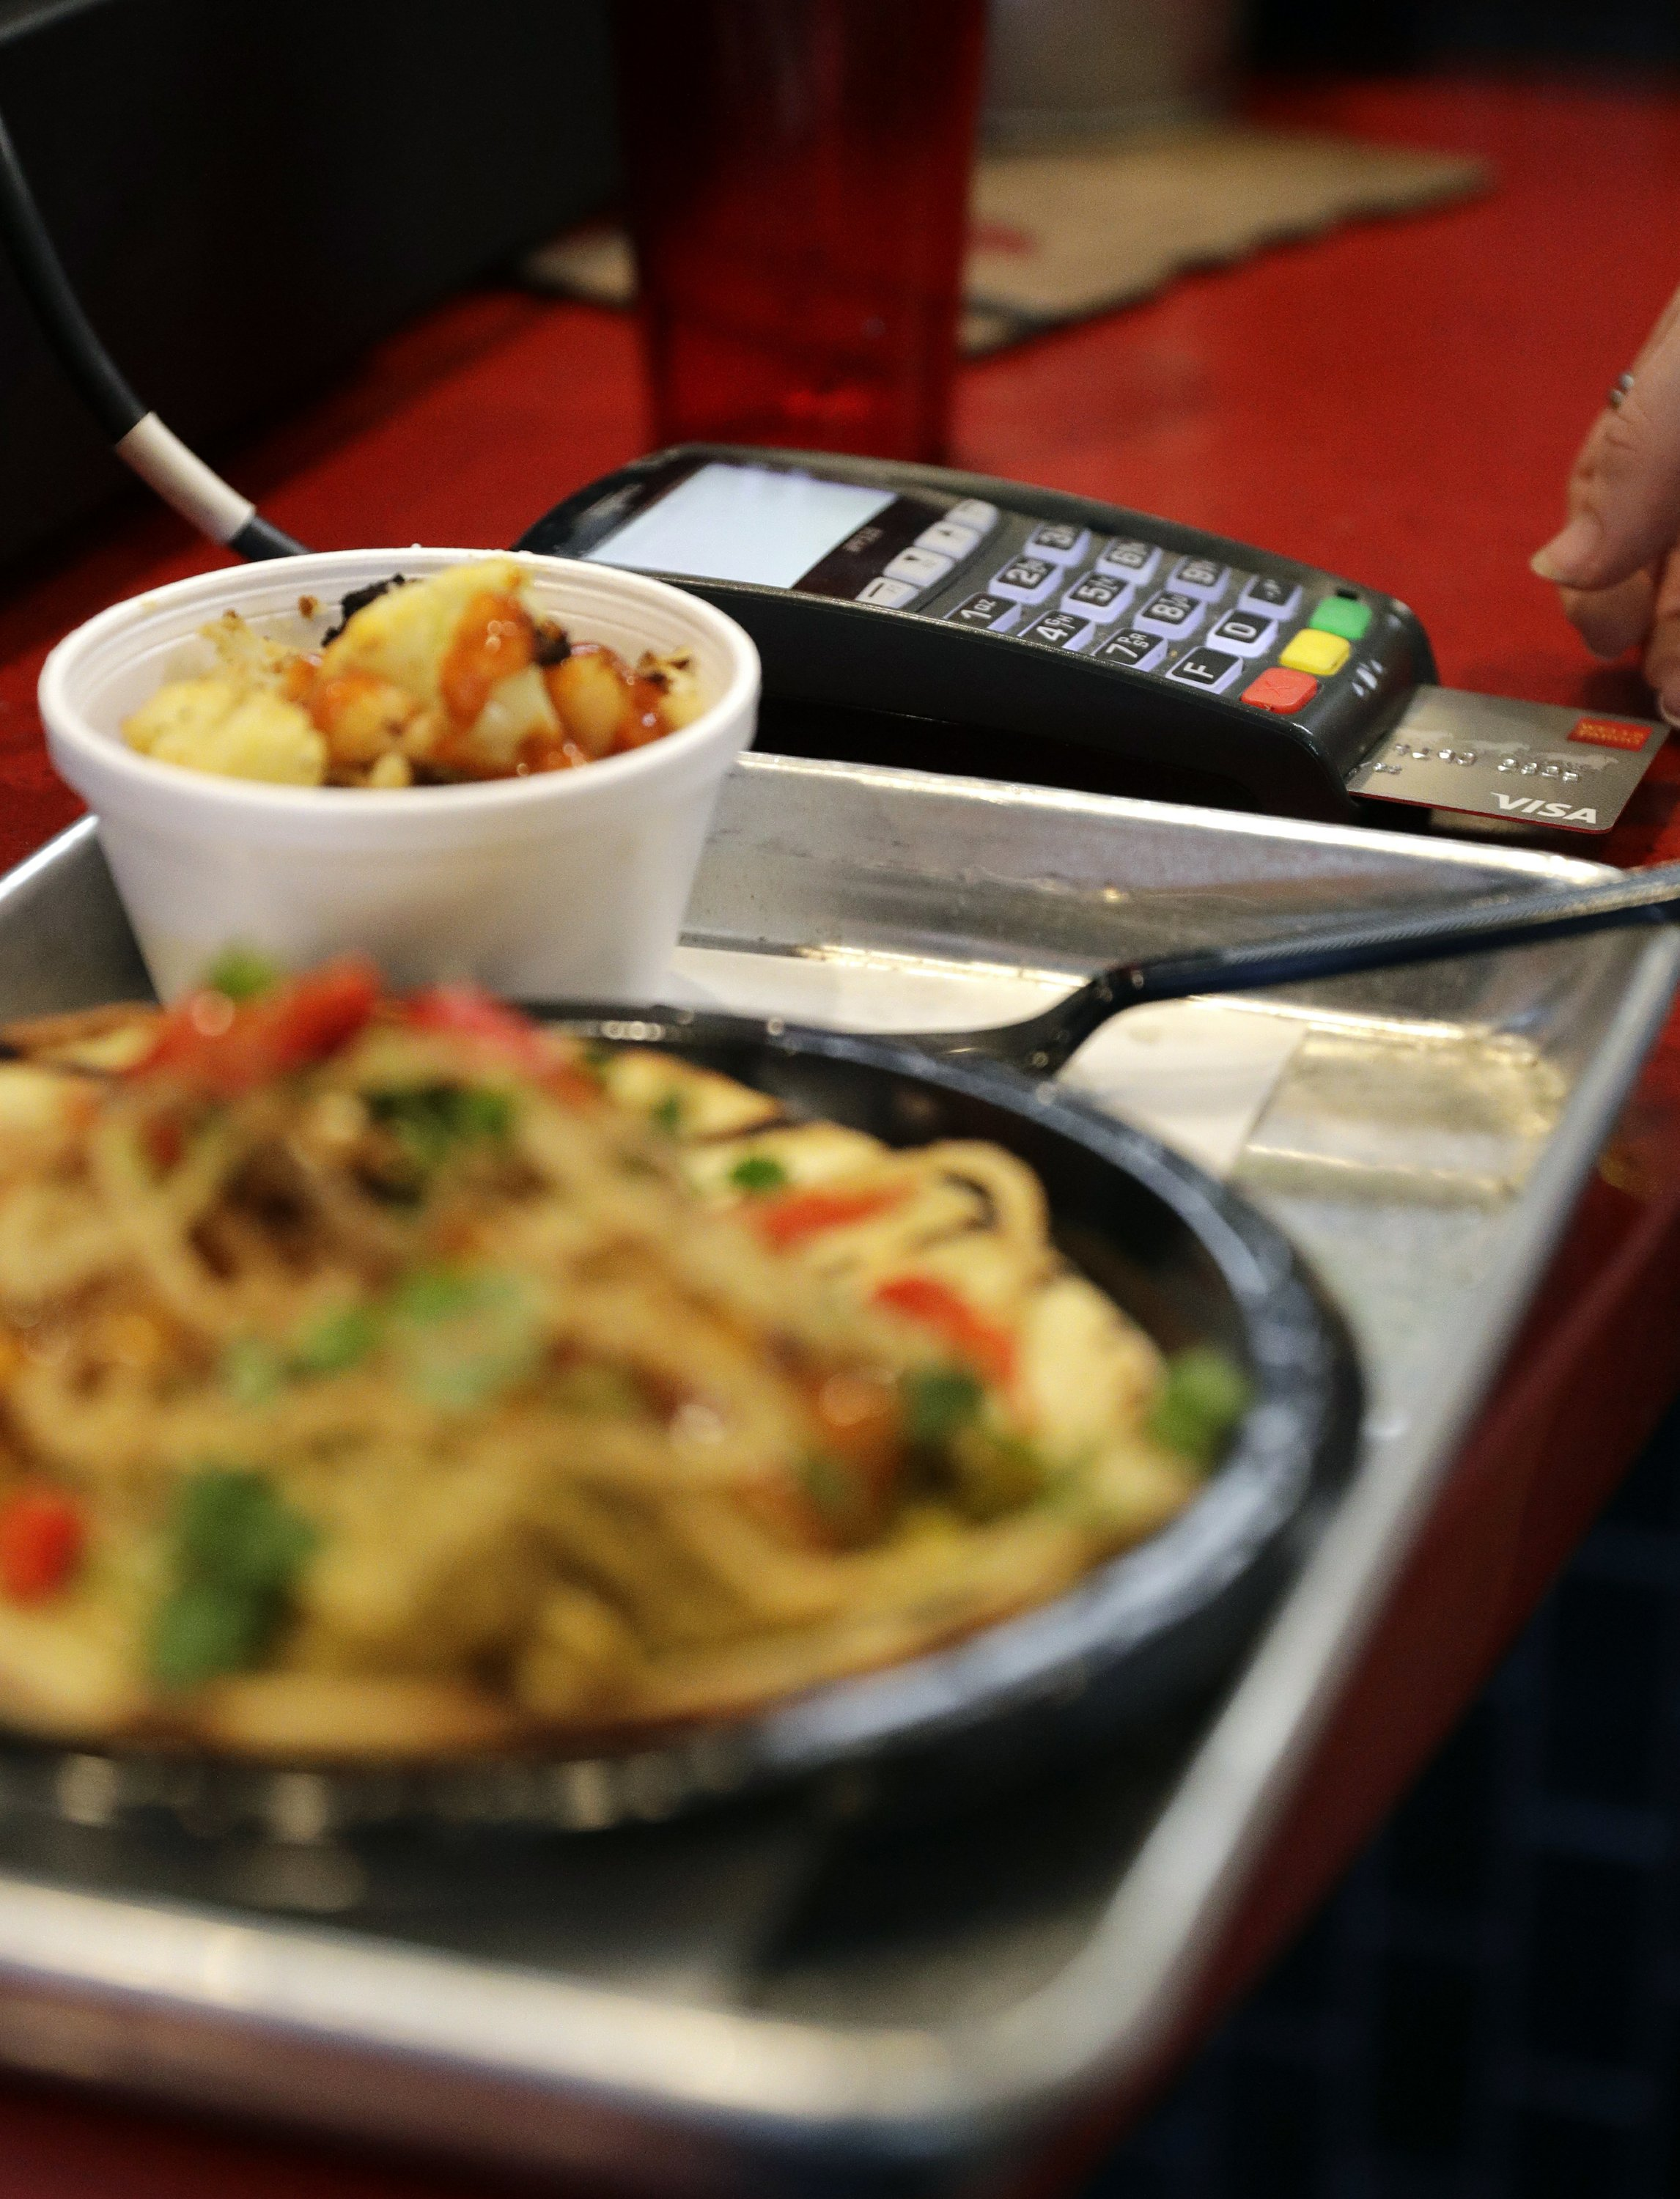 As cashless stores grow, so does the backlash